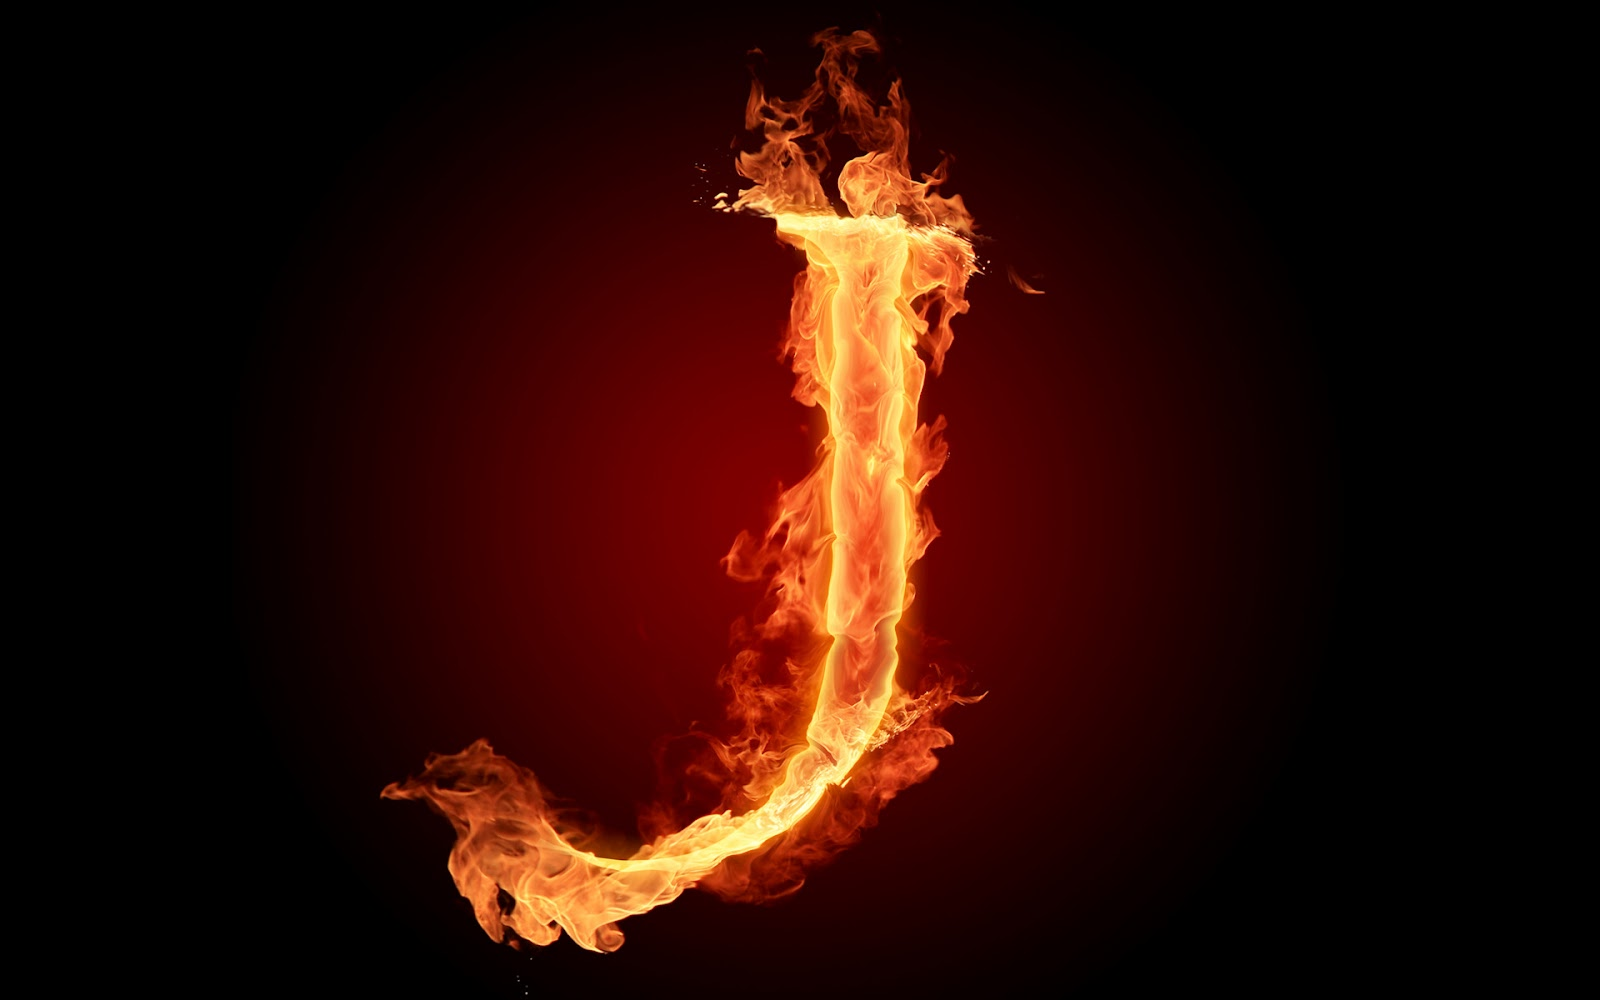 http://2.bp.blogspot.com/-eiiXq9TJc74/T0udaVcPLxI/AAAAAAAAM9I/sXOBlMz53OA/s1600/the-fiery-english-alphabet-picture-j_1920x1200_73624.jpg